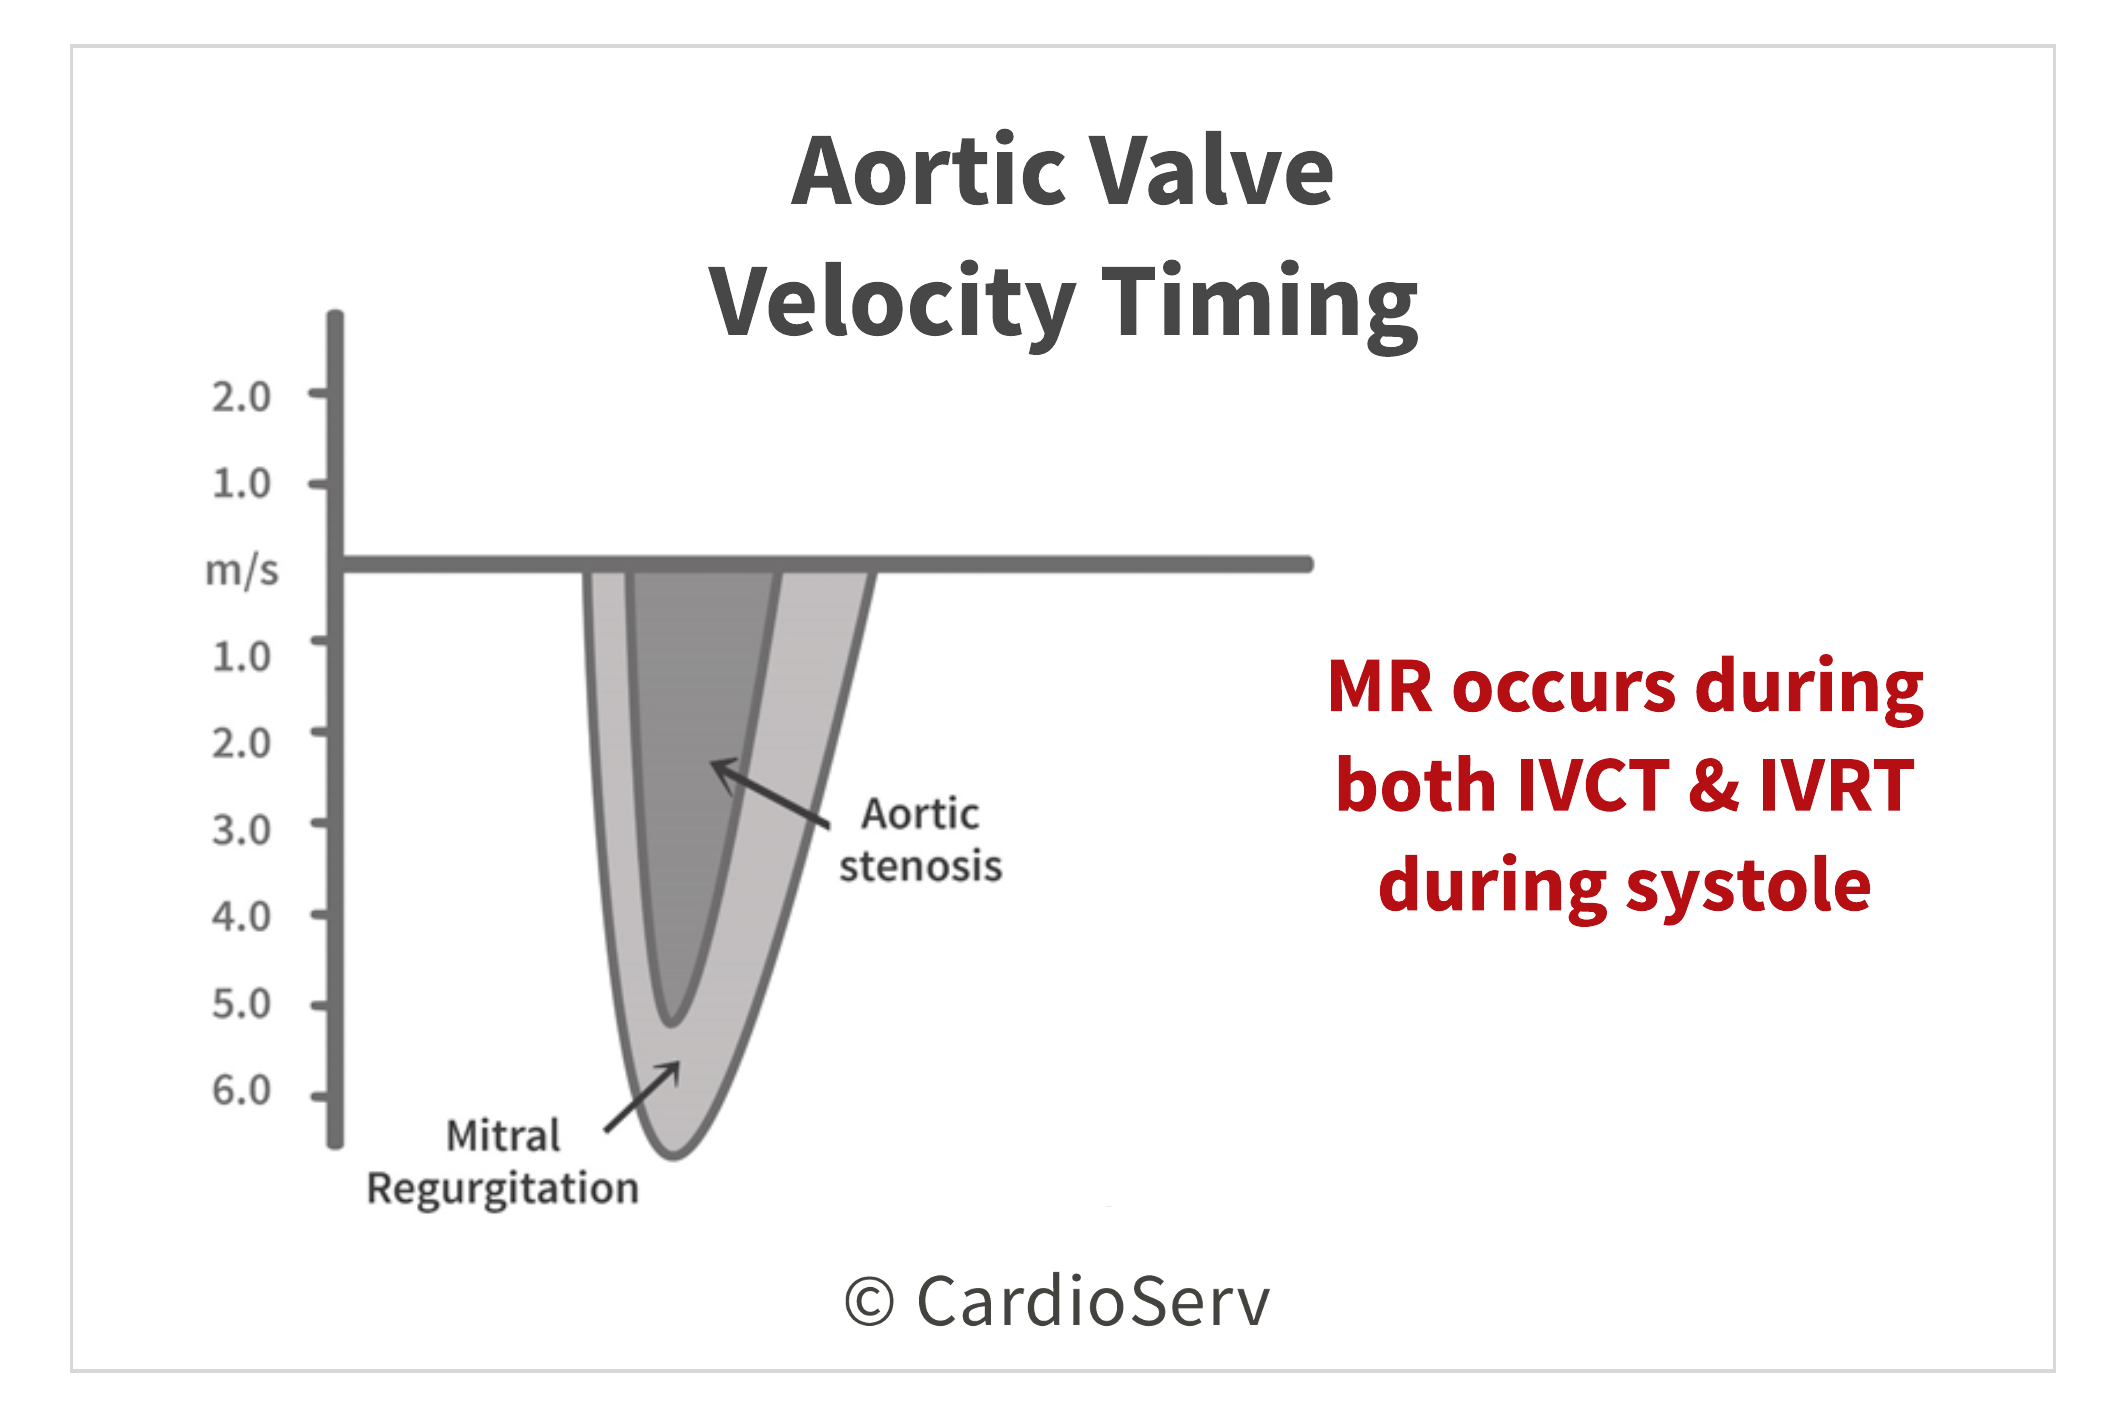 Aortic Valve Velocity Timing Measurement